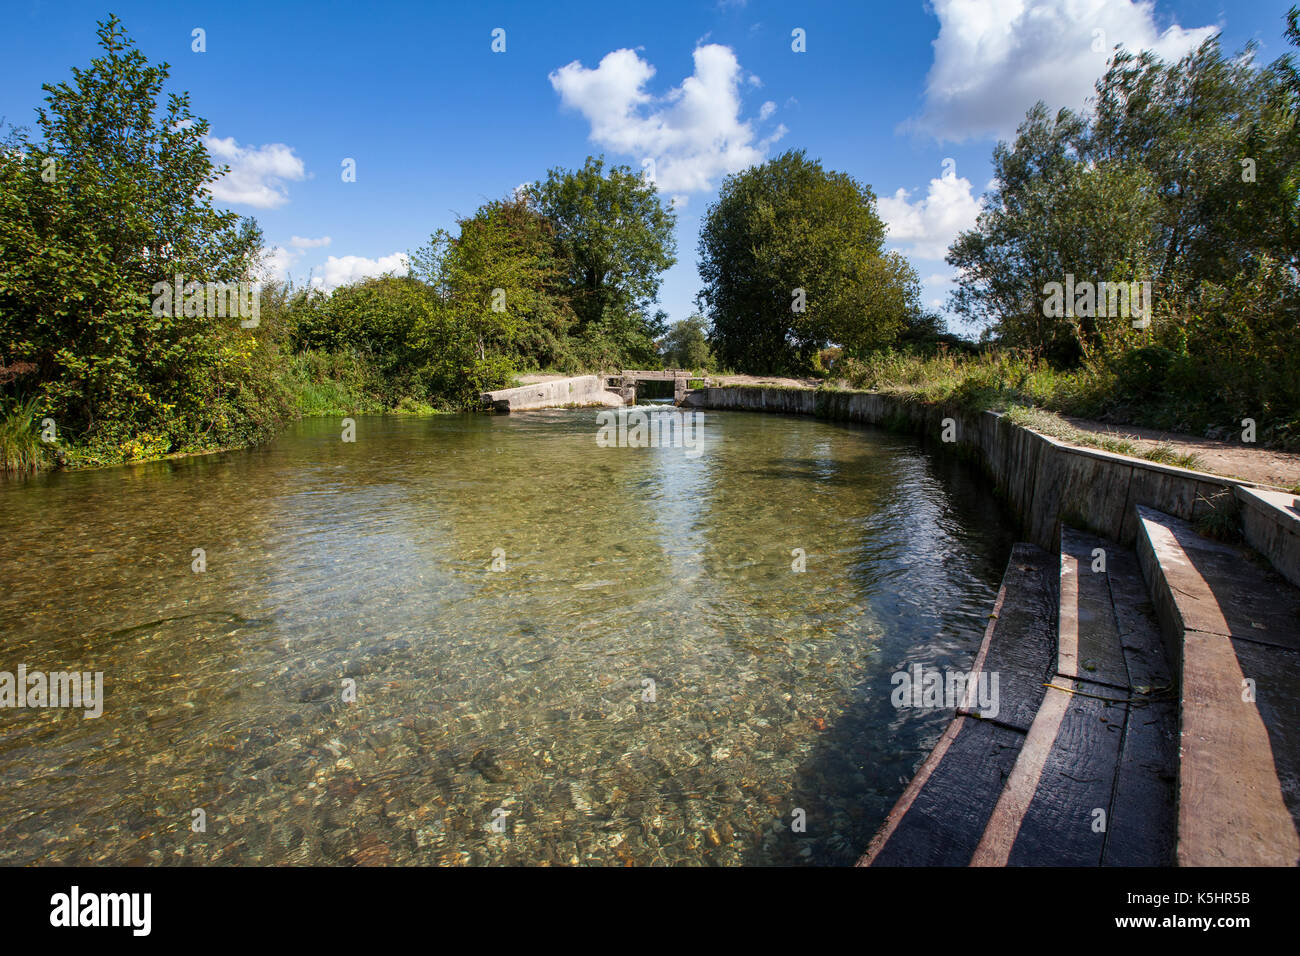 Shawford Lock on the Itchen Navigation between Shawford and Twyford in Hampshire. The lock is a popular wild swimming spot. - Stock Image